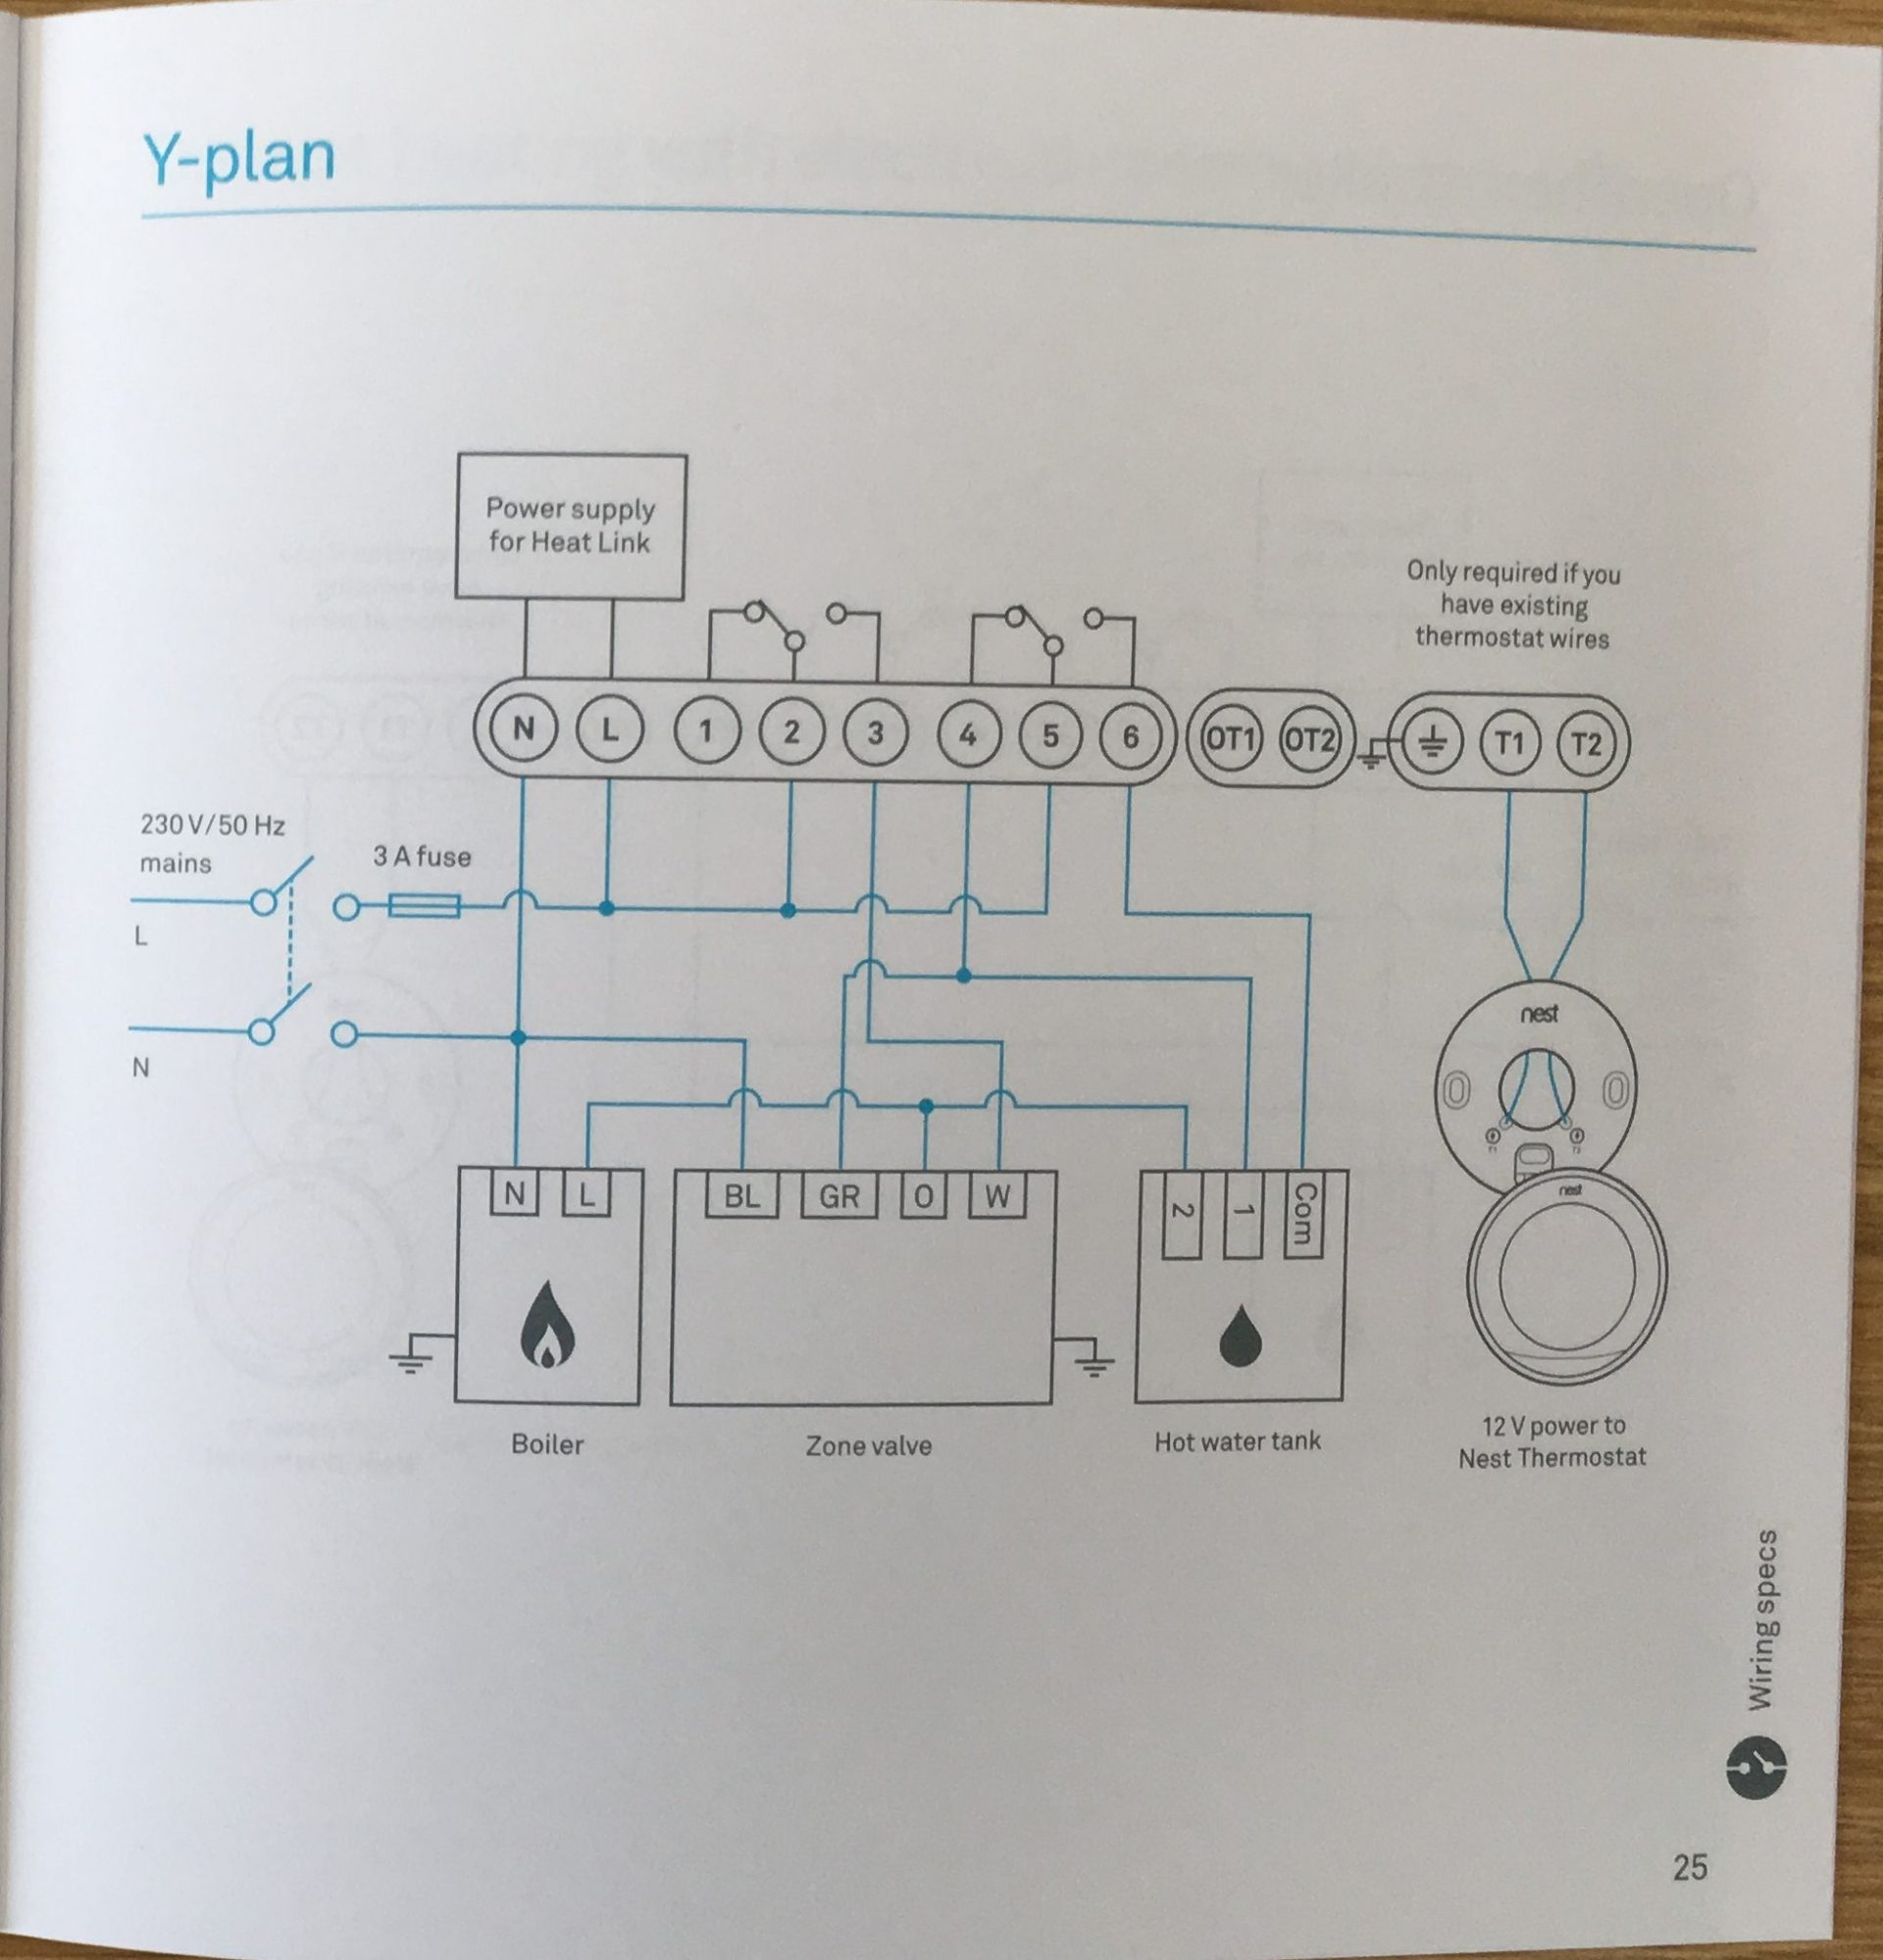 How To Install The Nest Learning Thermostat (3Rd Gen) In A Y-Plan - Nest S Plan Wiring Diagram